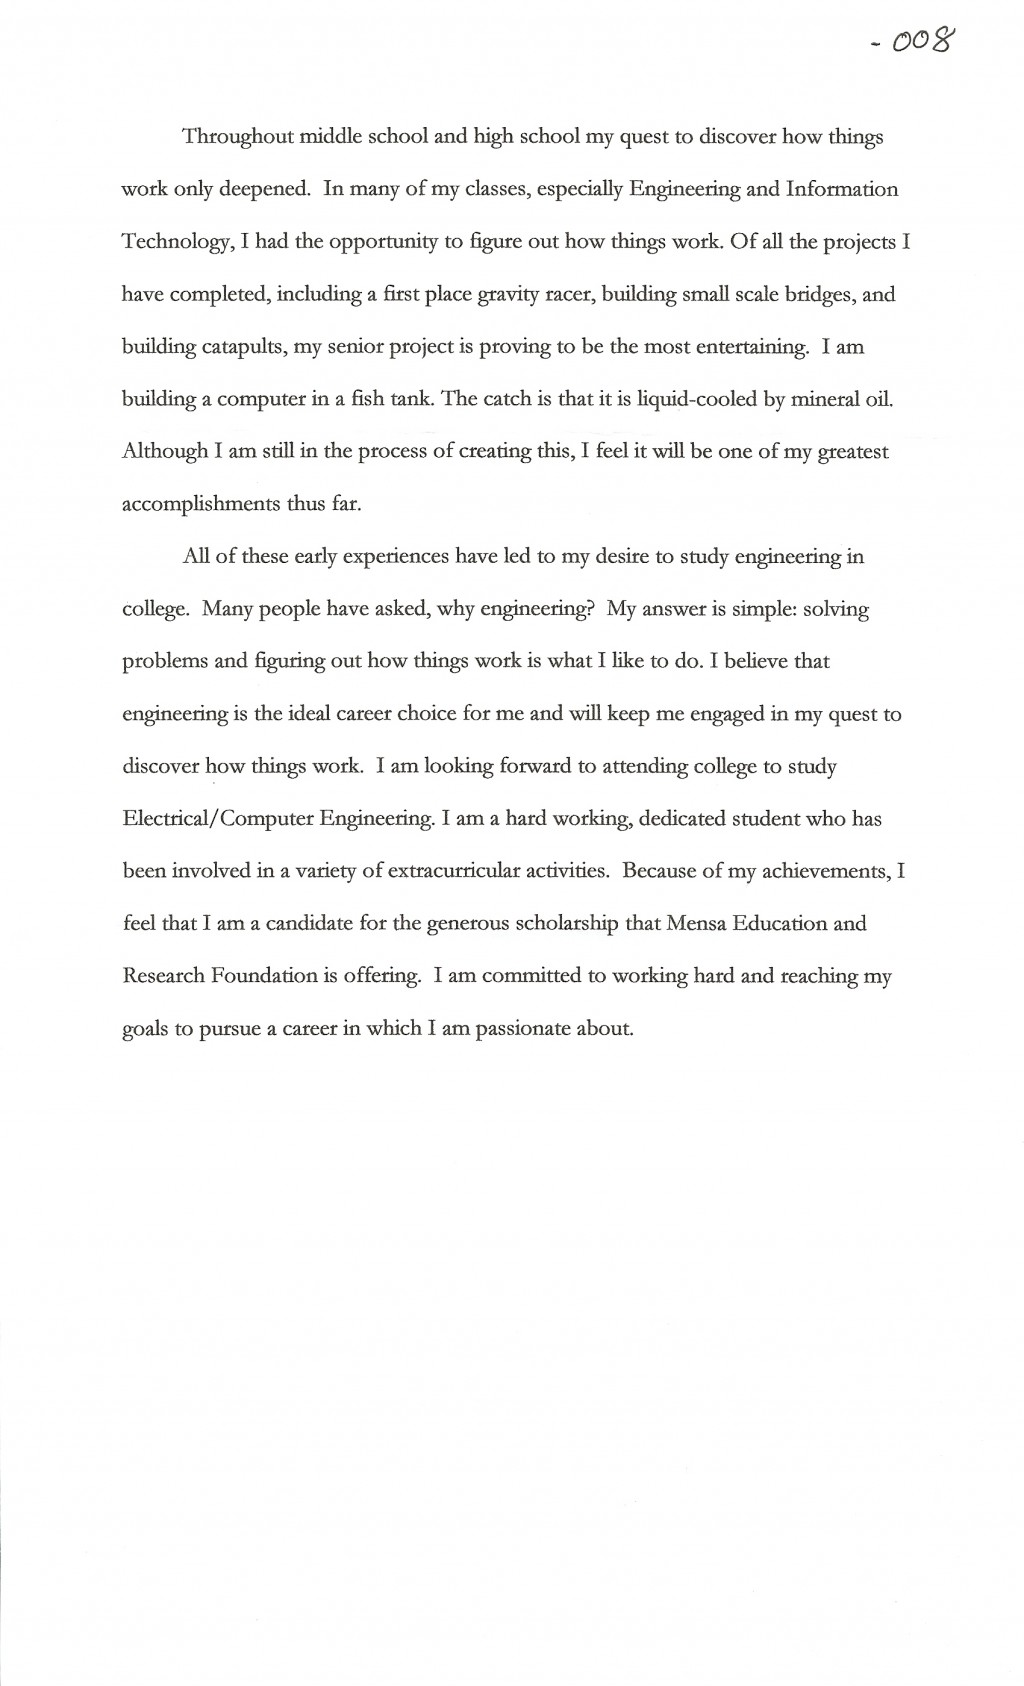 003 Joshua Cate Essay Example About Awesome Goals In High School After Career Life Large